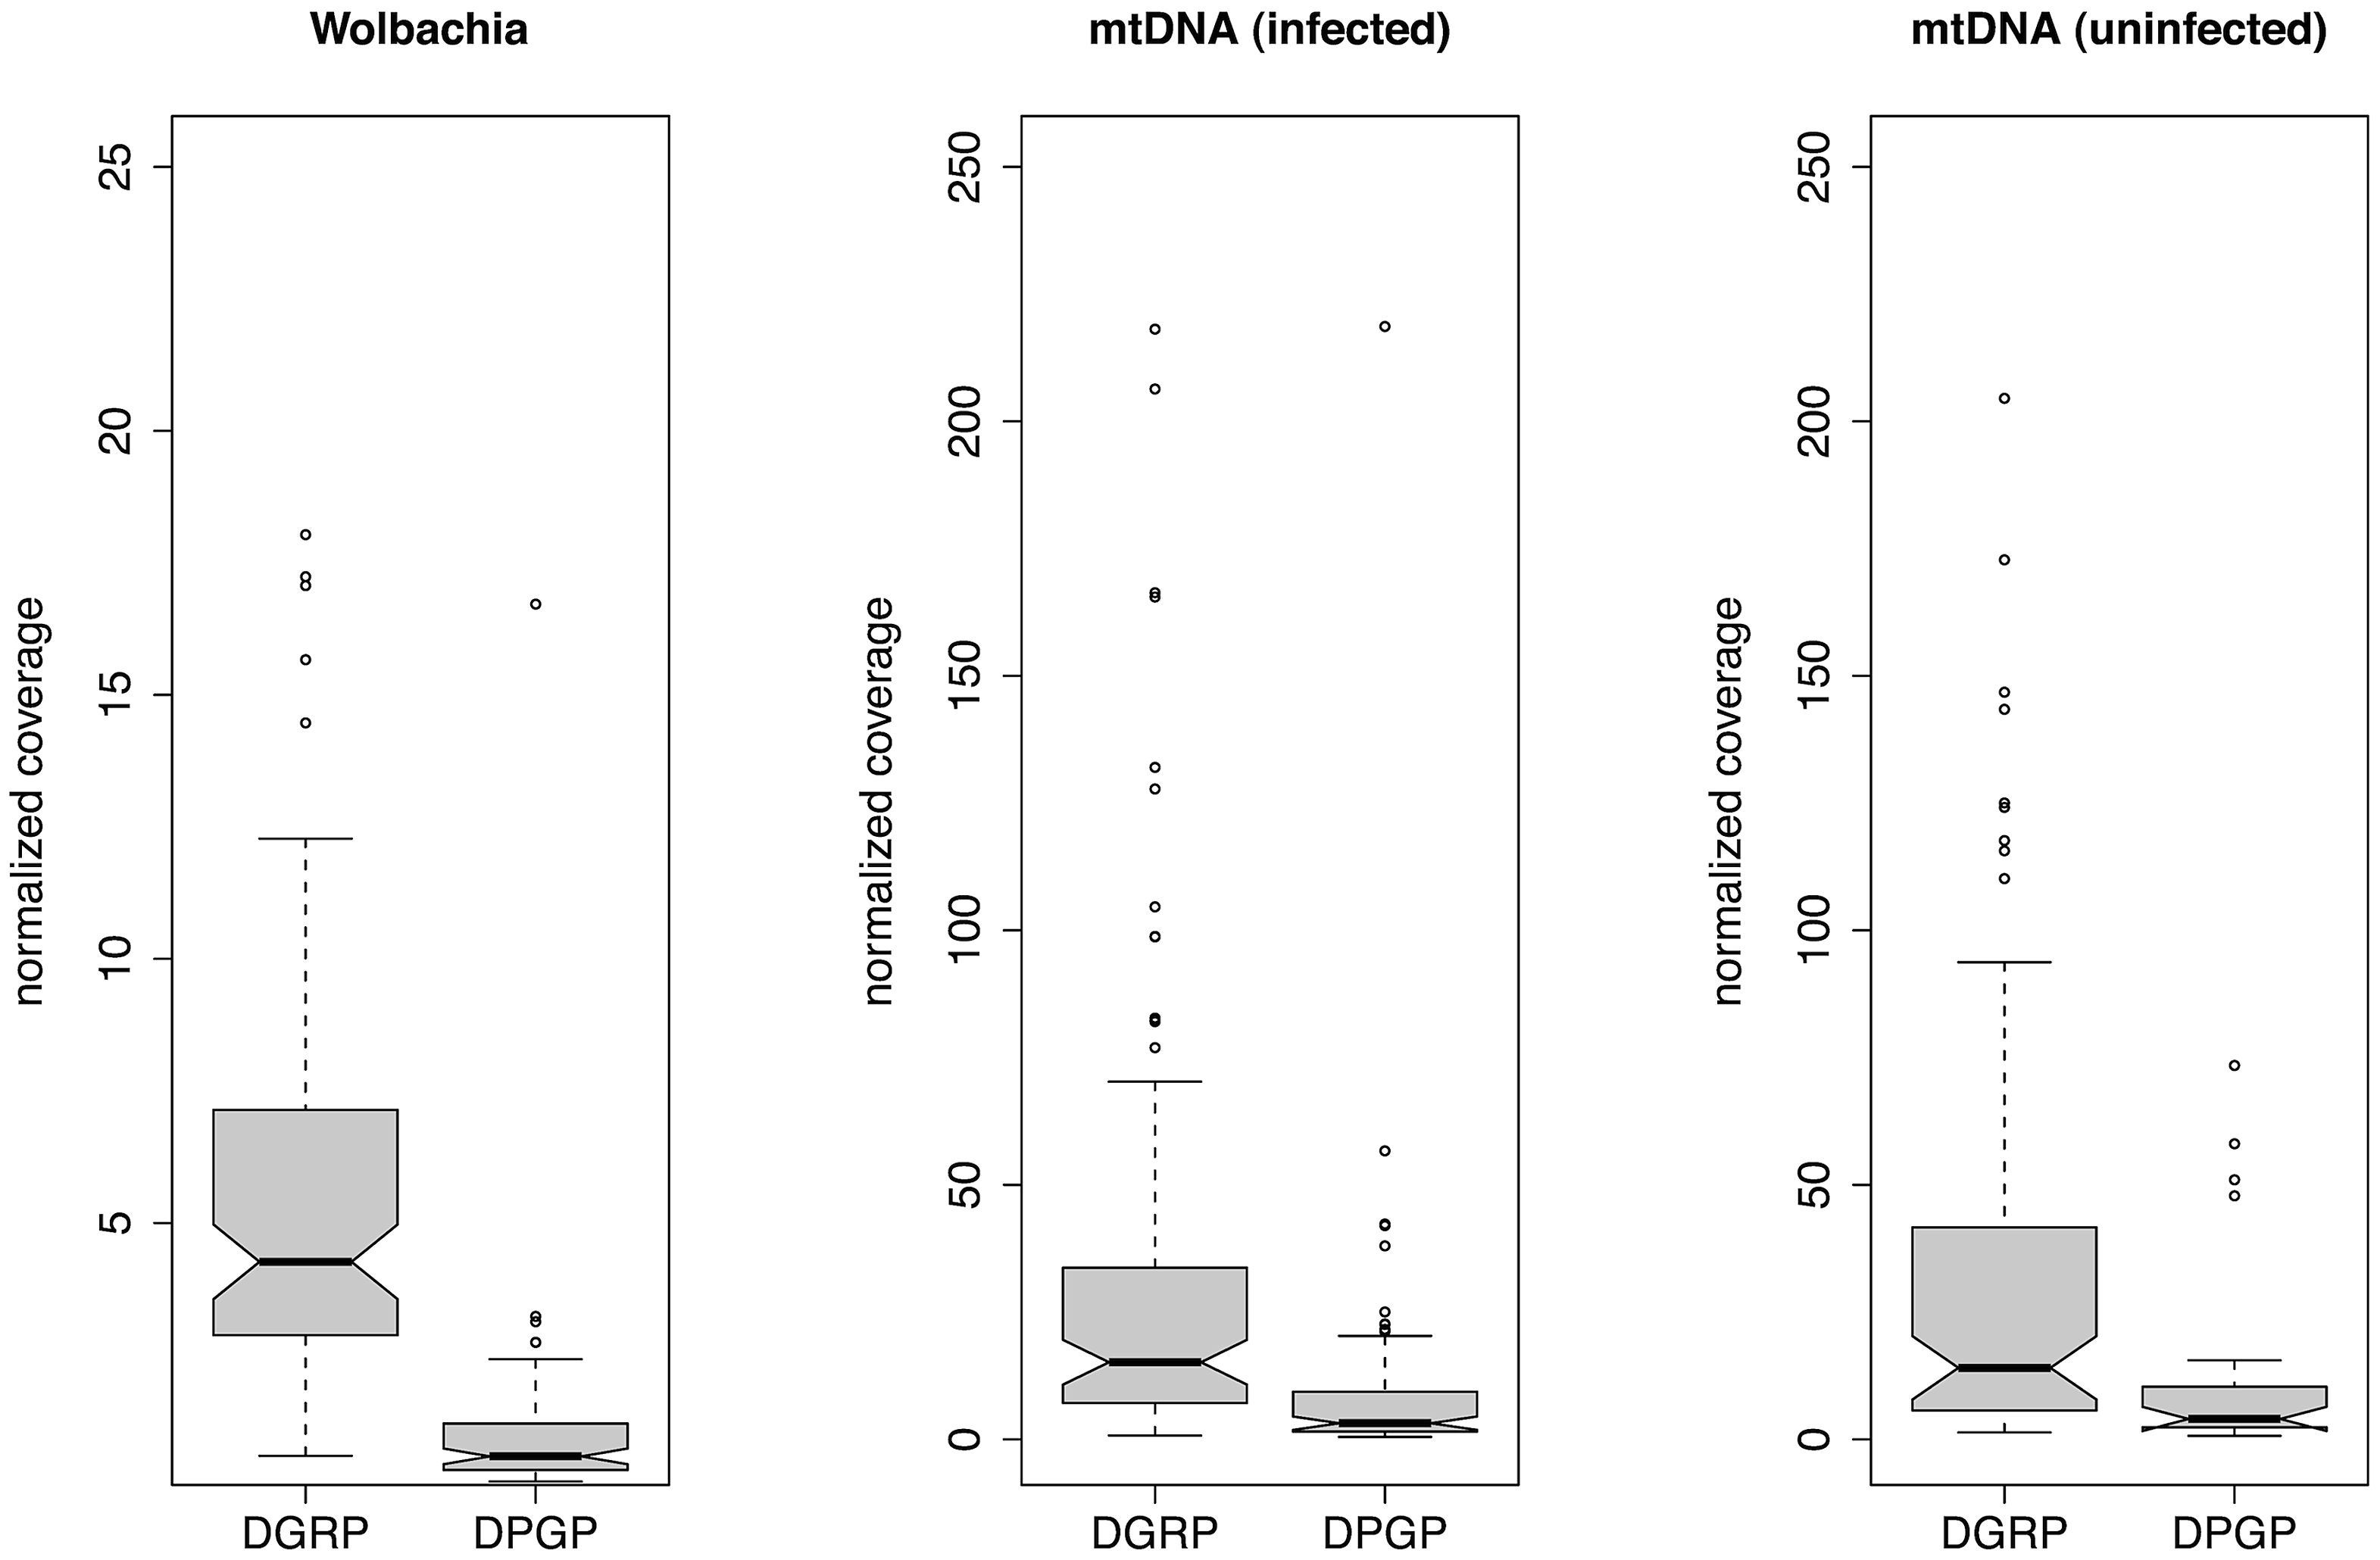 Relative depth of sequencing coverage for <i>Wolbachia</i> and mtDNA assemblies.